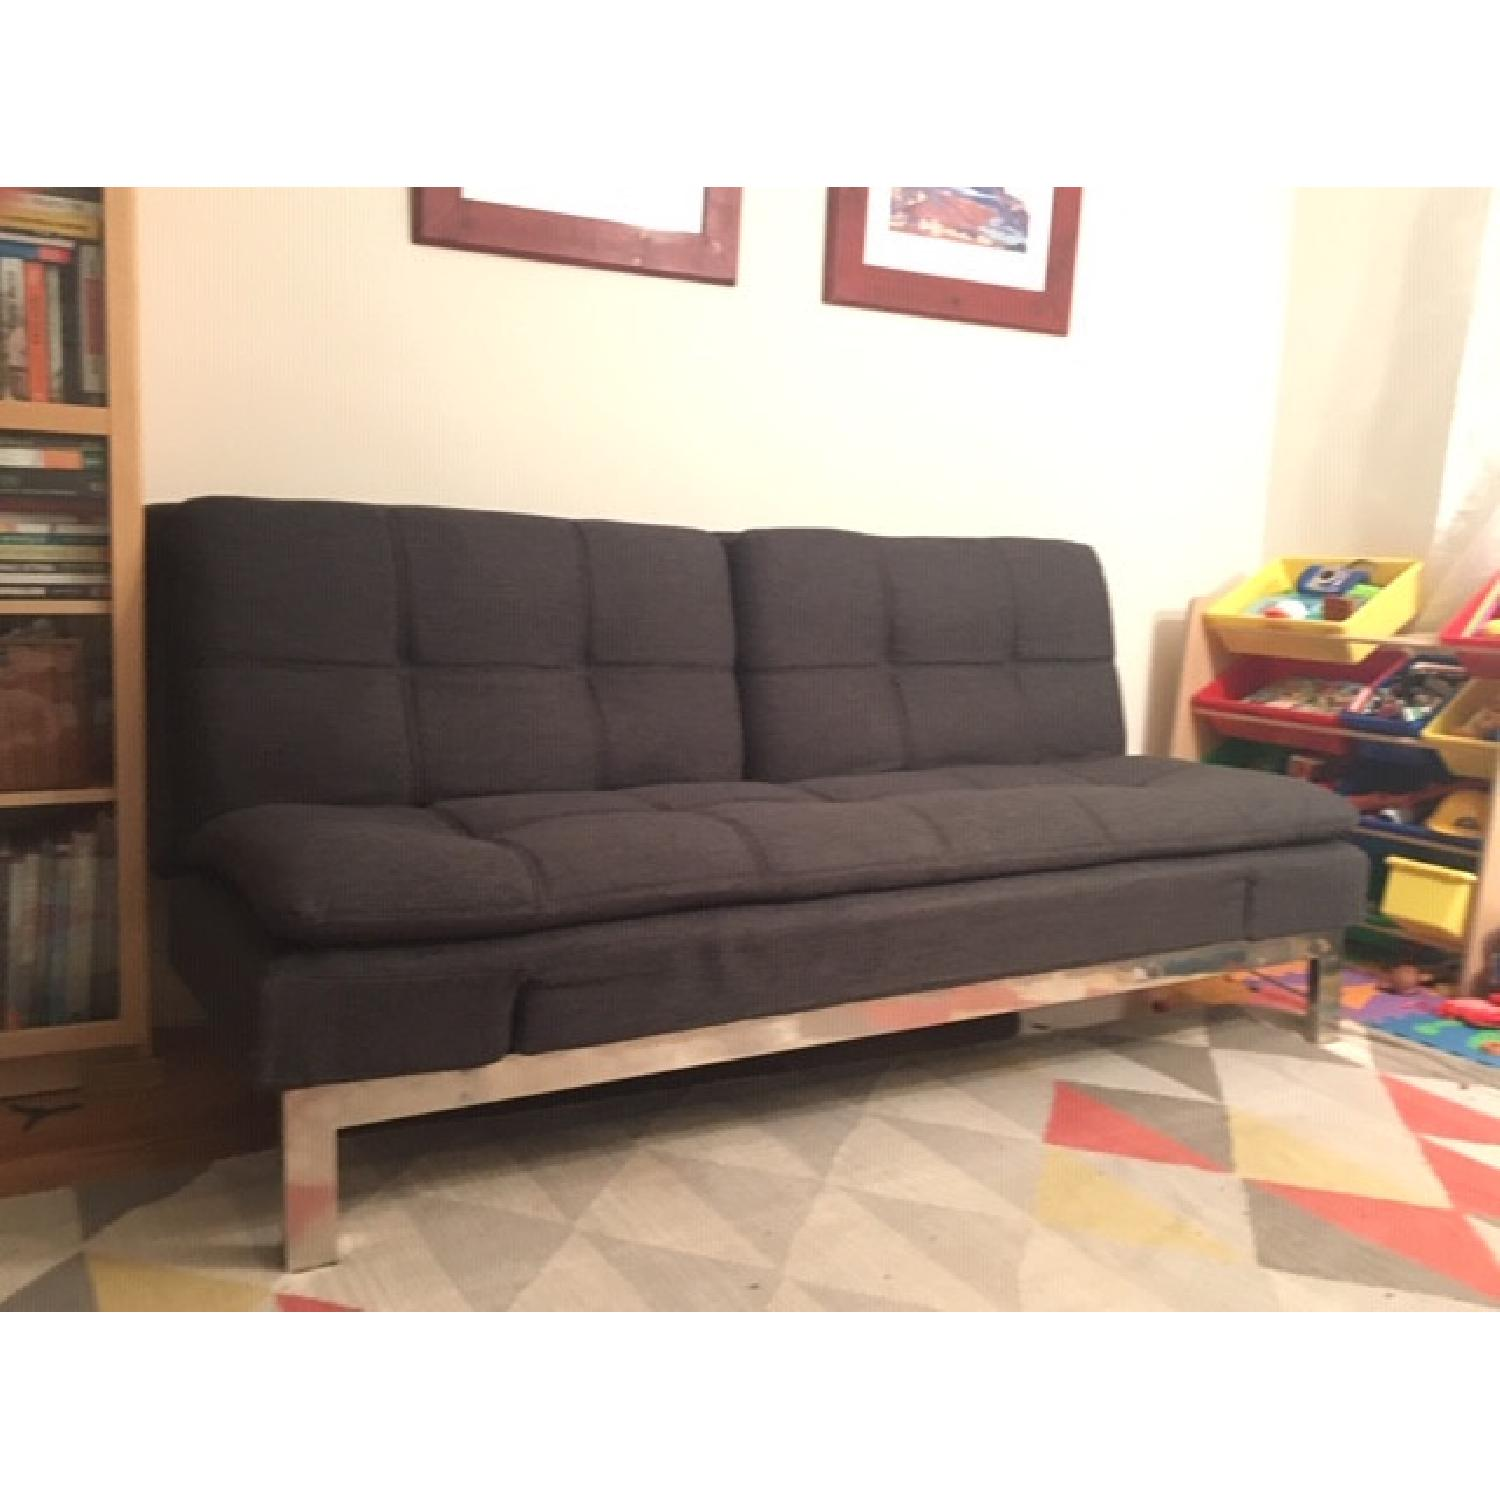 Lifestyle Solutions Serta Convertible Sofa - image-2